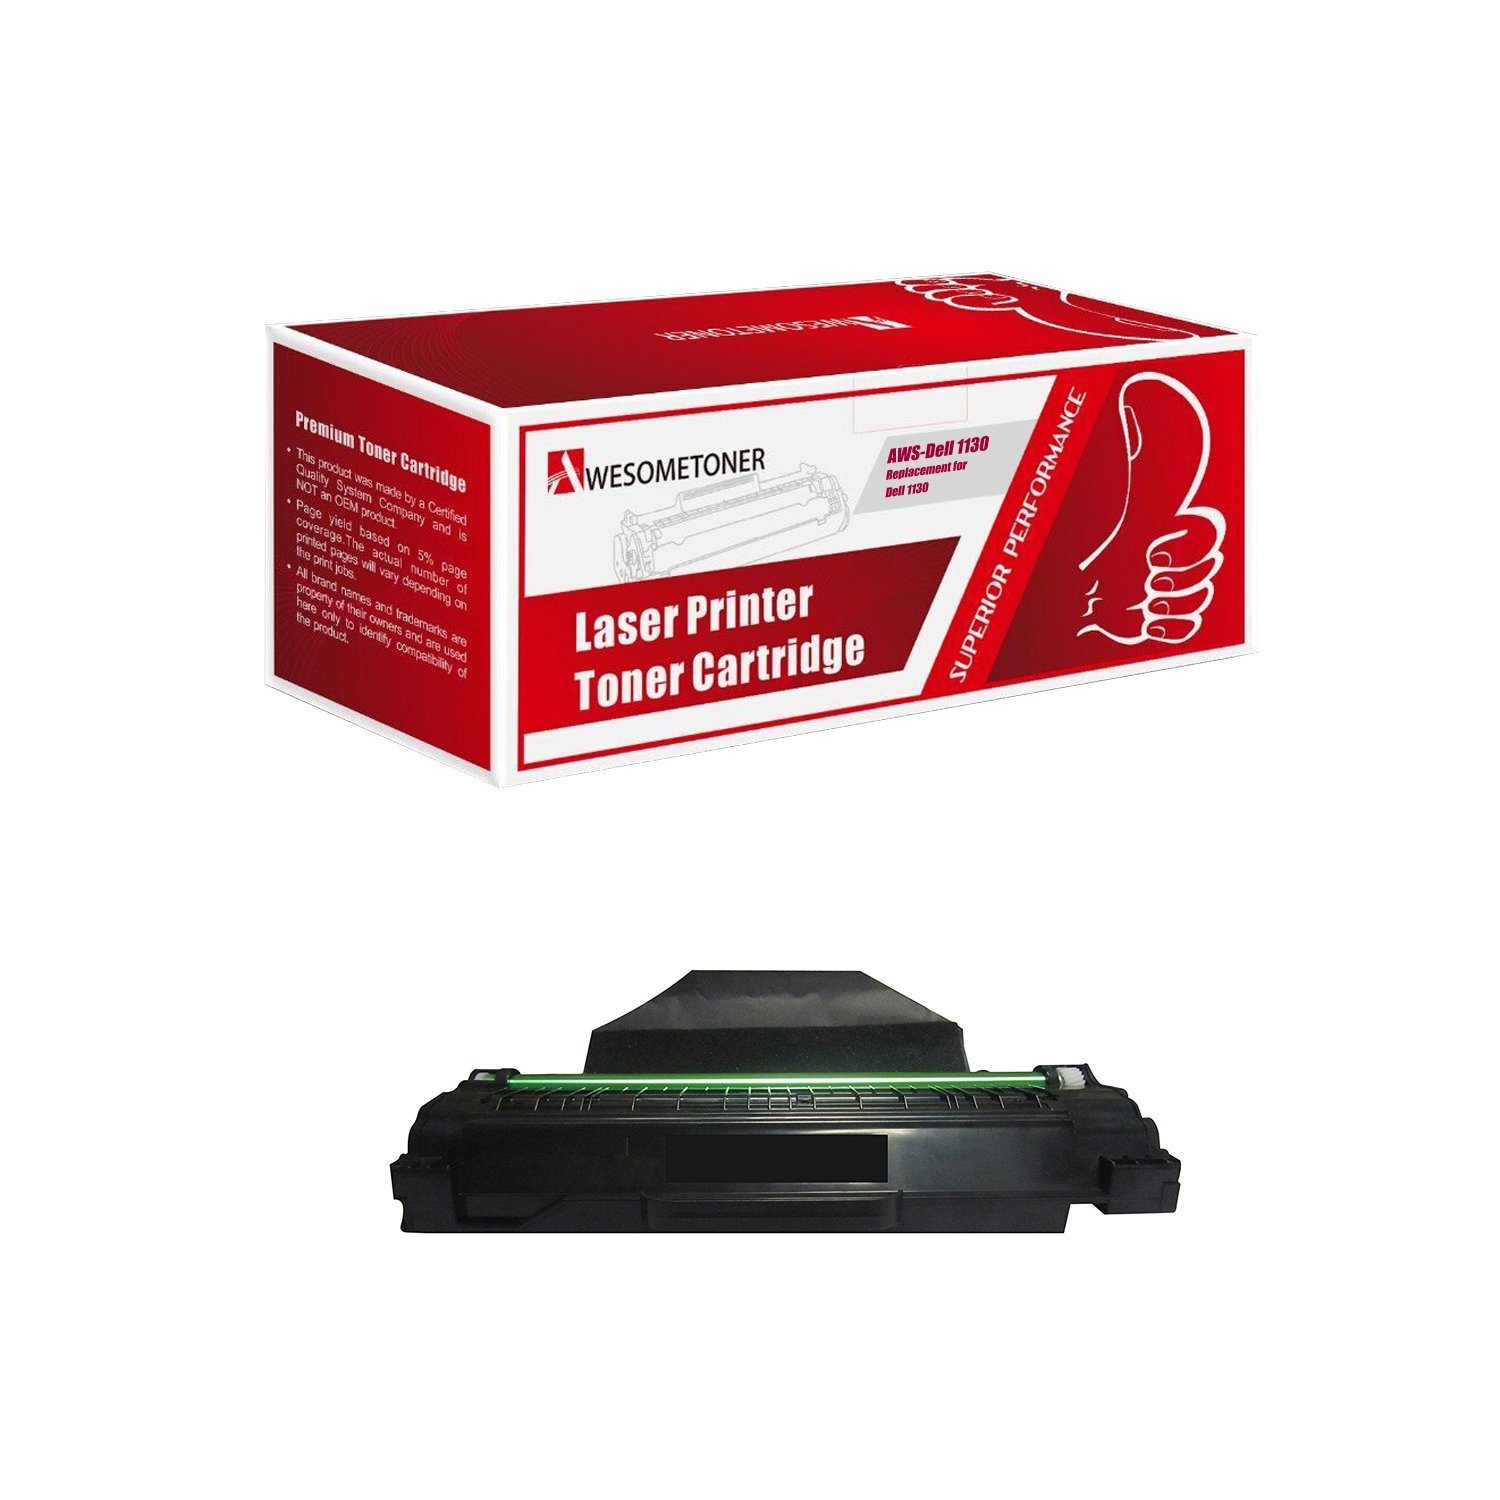 Awesometoner Compatible Toner to replace Dell 330-9523 (7H53W) High Yield  Black Toner Cartridge for your Dell 1130,1135 Printer